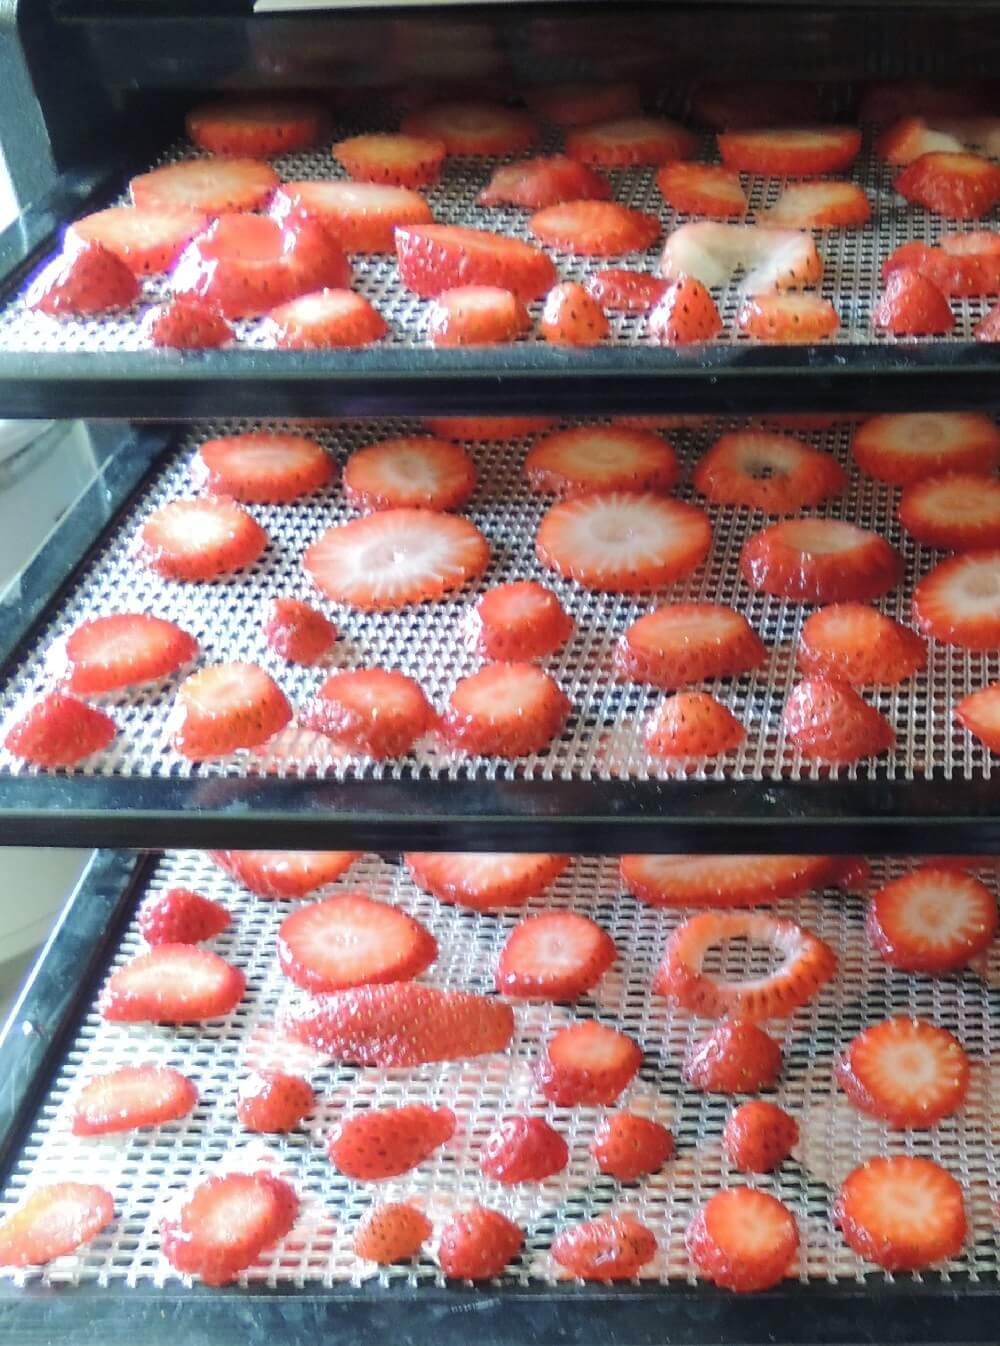 dehydrator recipes: strawberries on dehydrator tray